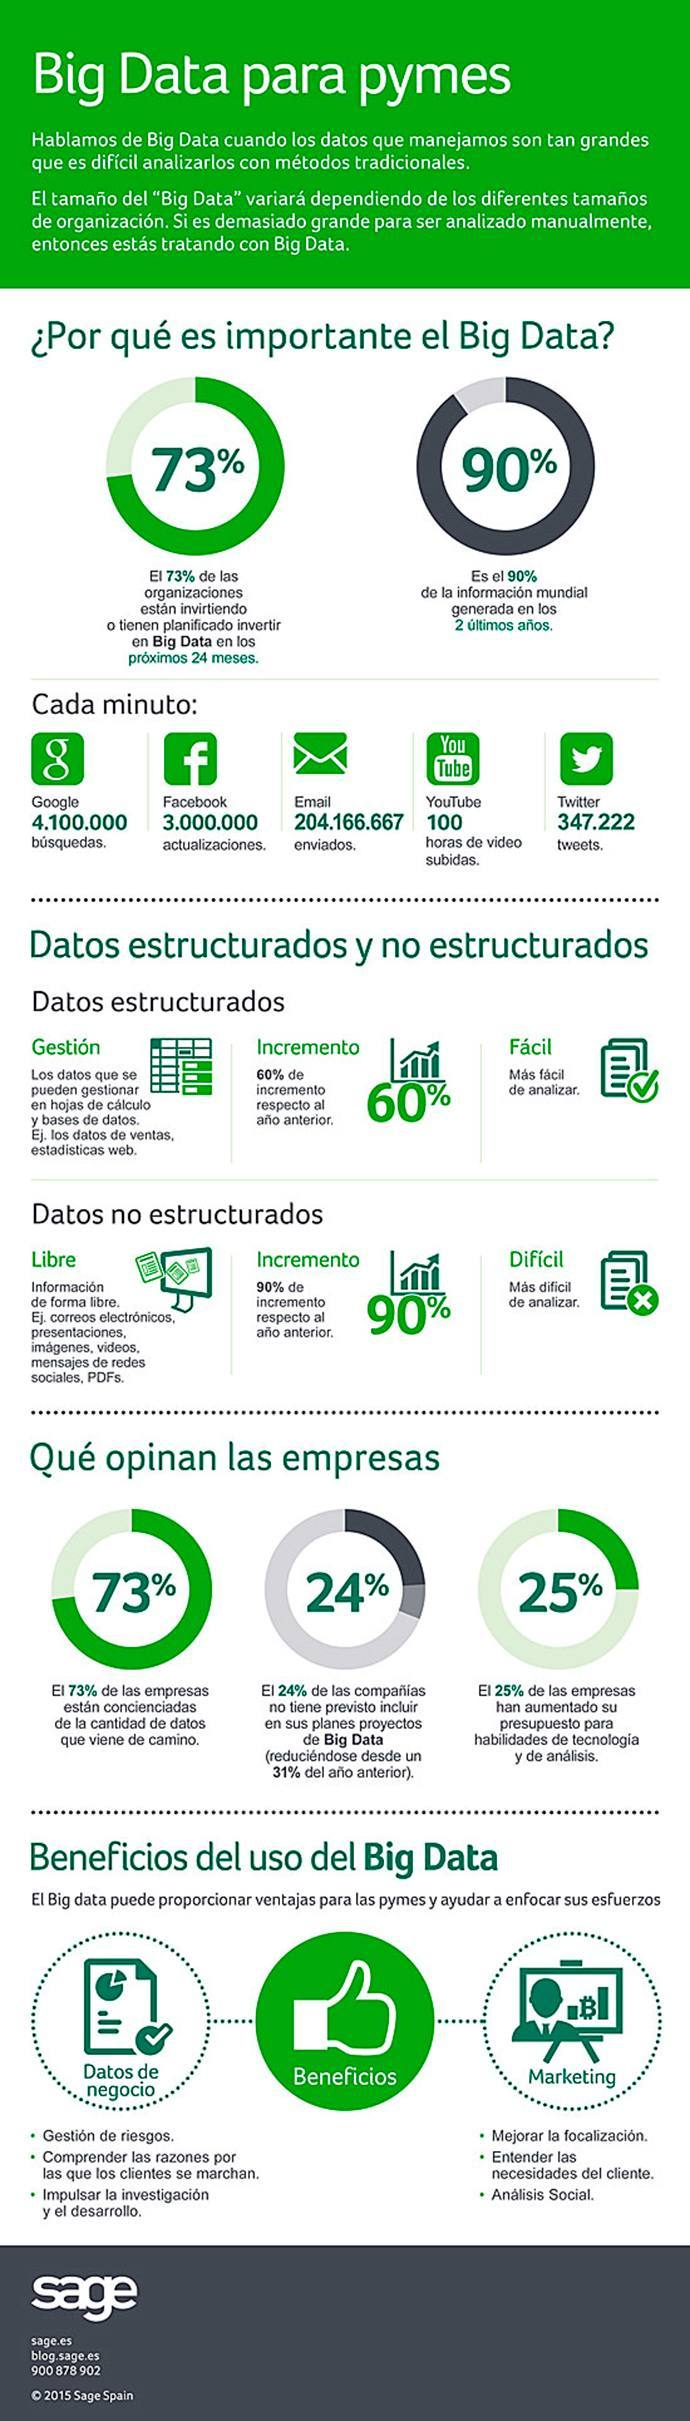 Infografia_Big-Data-para-pymes